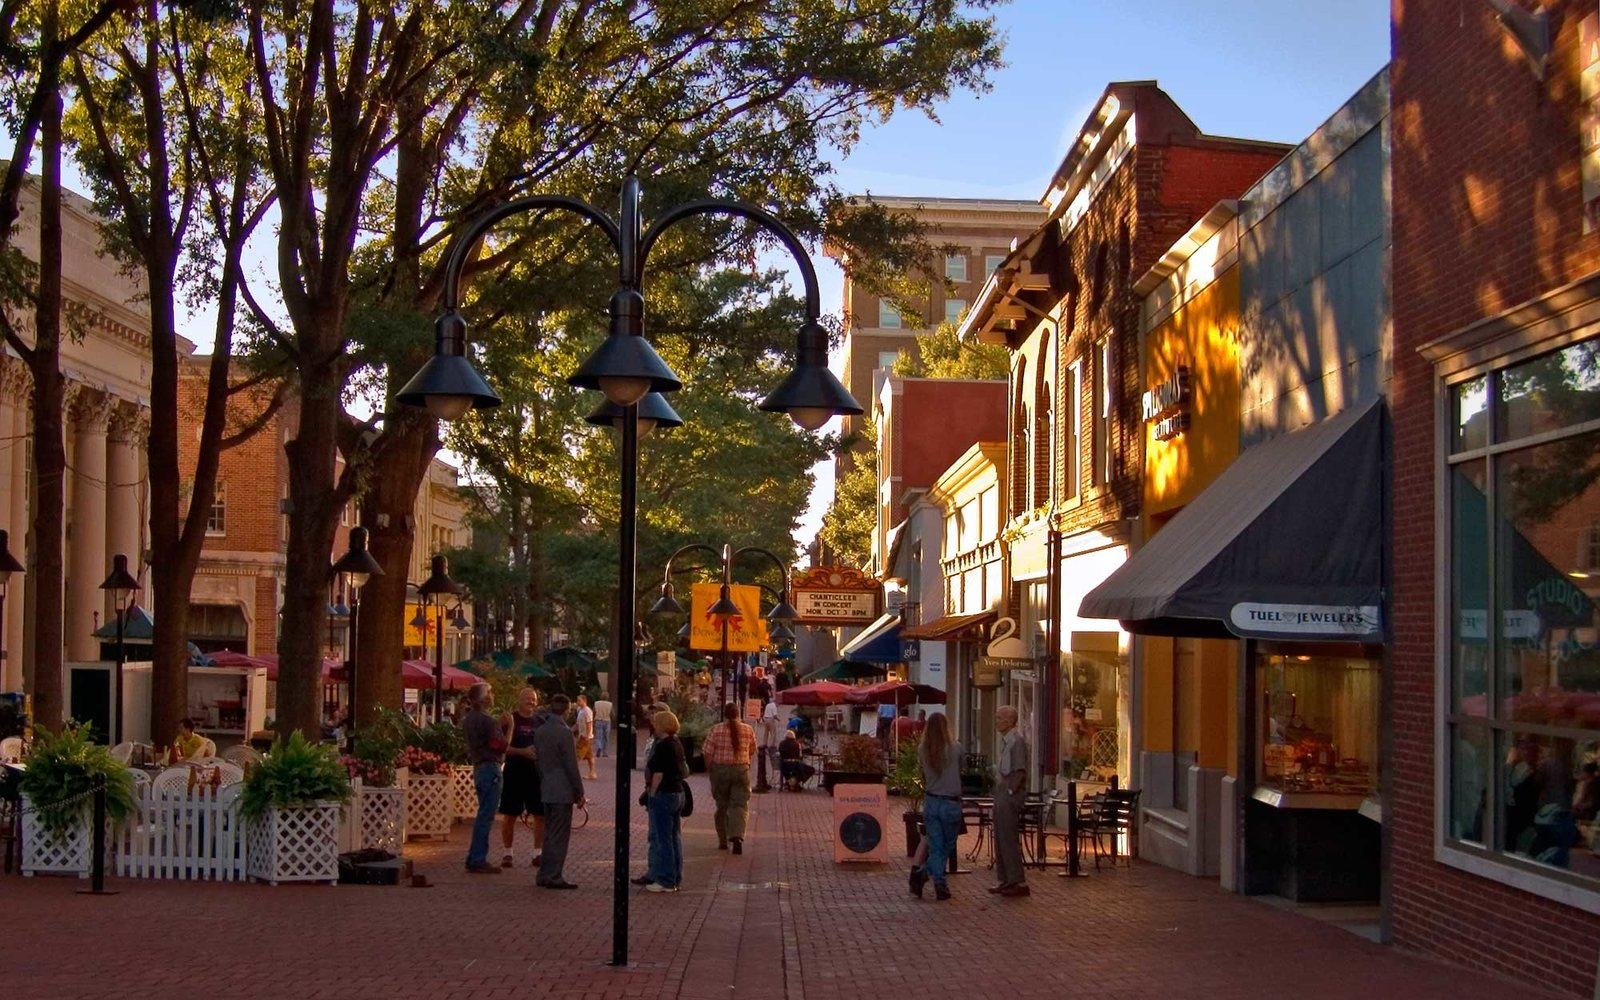 Main Street Pedestrian mall, Charlottesville VA. (Photo by: MyLoupe/UIG via Getty Images)